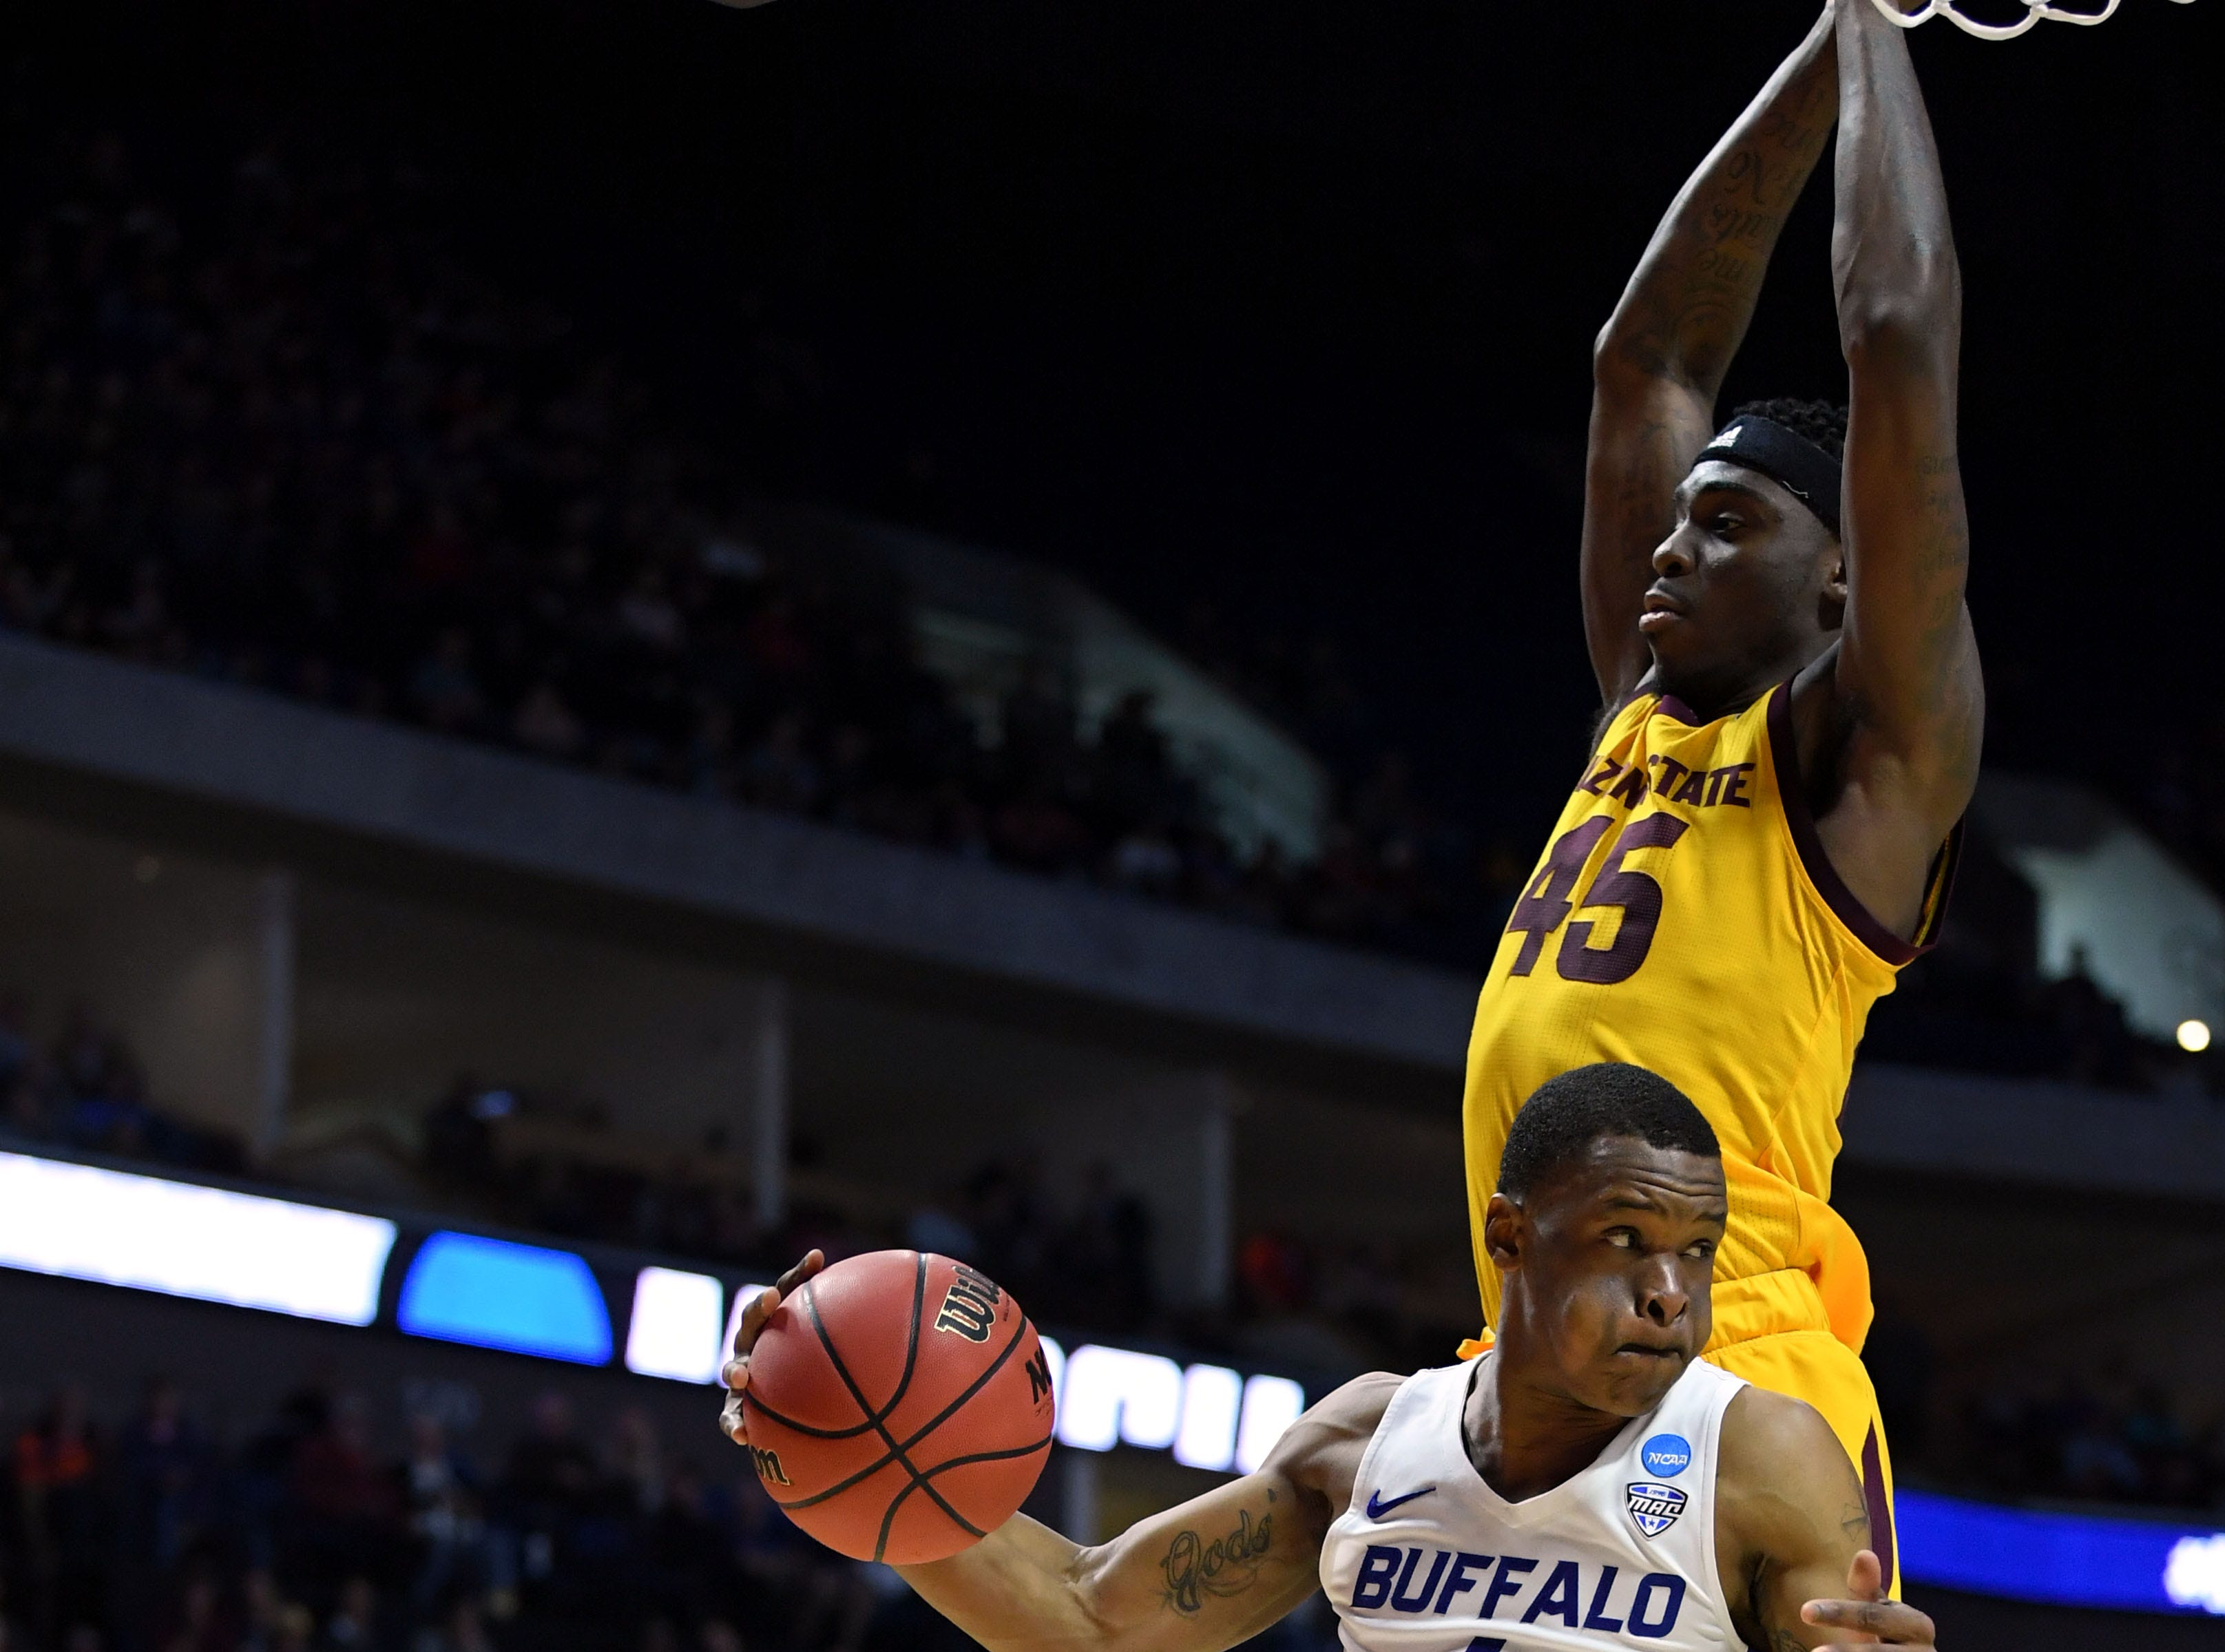 TULSA, OKLAHOMA - MARCH 22:  Davonta Jordan #4 of the Buffalo Bulls drives against Kimani Lawrence #14 and Zylan Cheatham #45 of the Arizona State Sun Devils during the first half of the first round game of the 2019 NCAA Men's Basketball Tournament at BOK Center on March 22, 2019 in Tulsa, Oklahoma. (Photo by Harry How/Getty Images)